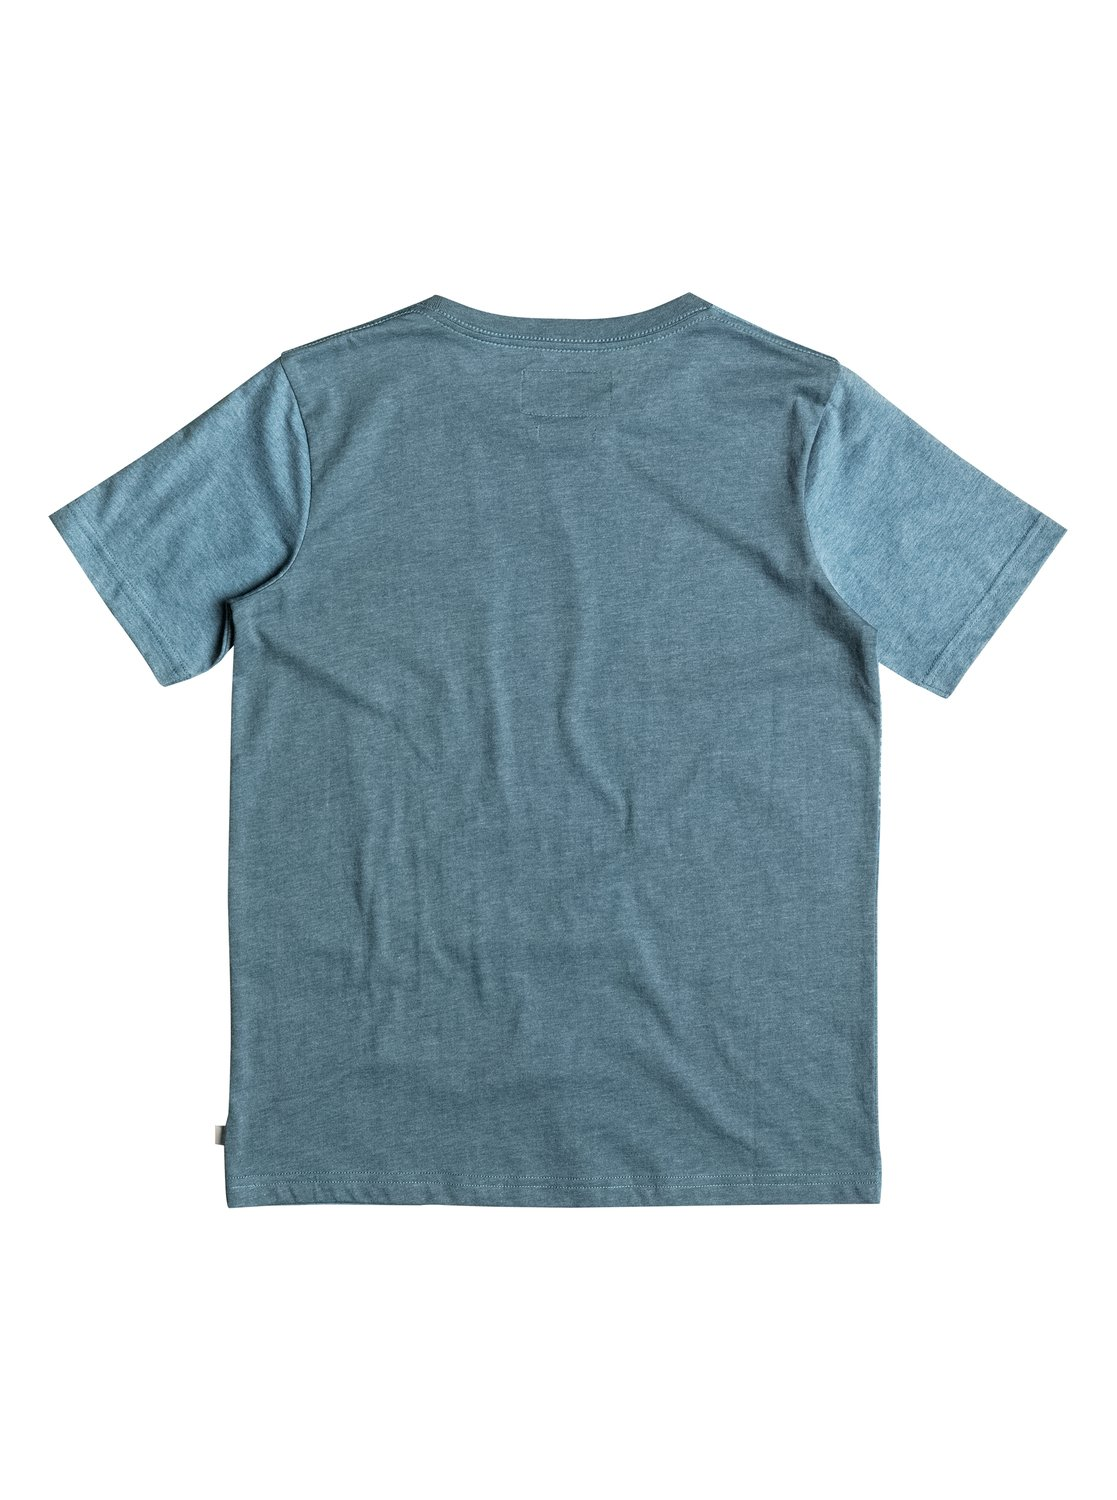 Faded time pocket t shirt 3613372383007 quiksilver for Faded color t shirts